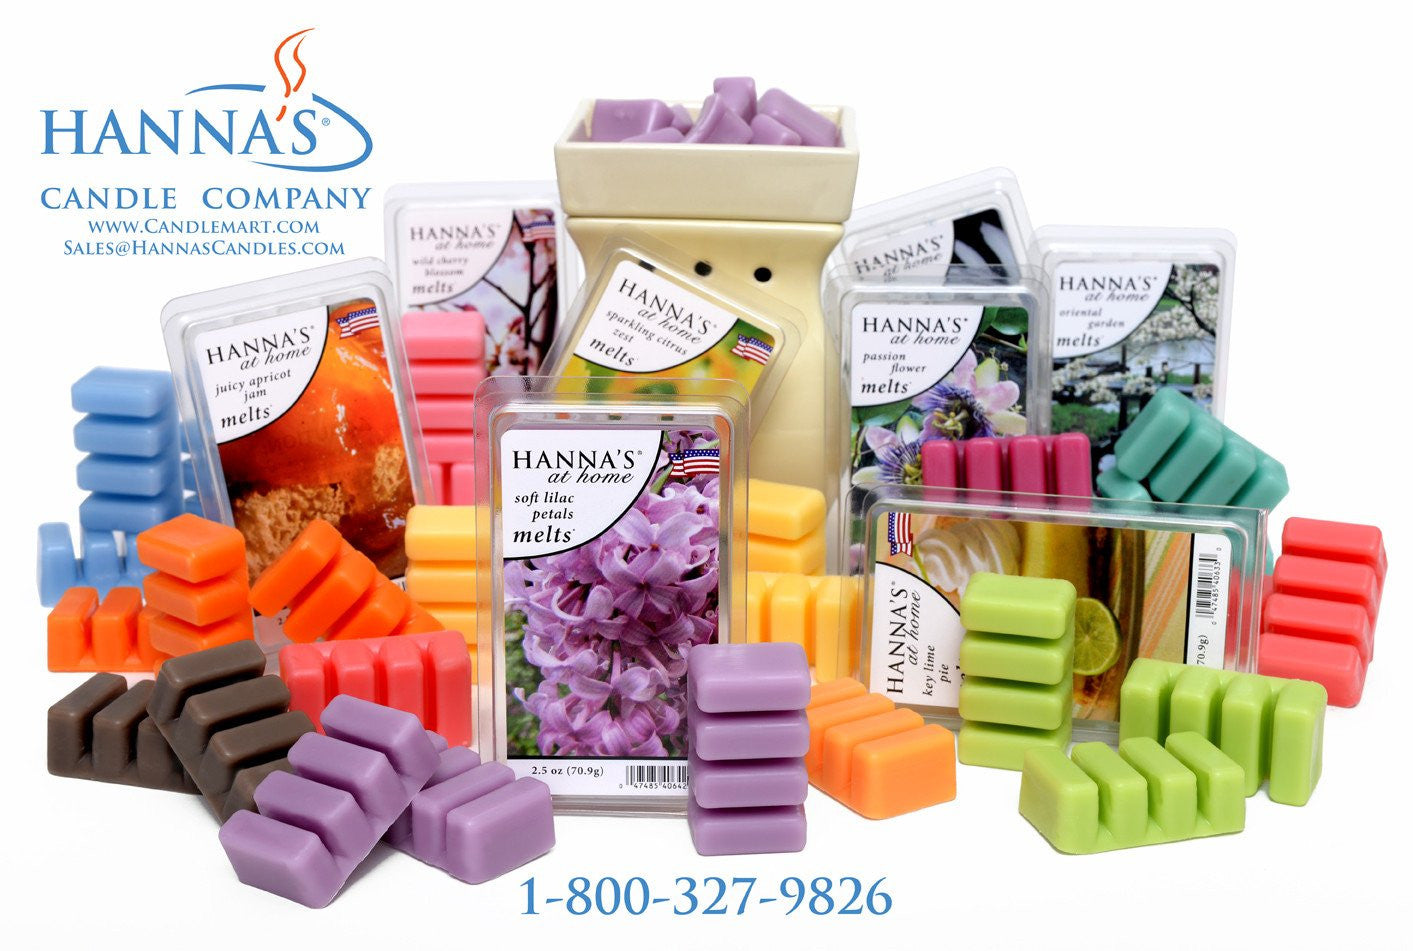 Early Morning Mist Scented Wax Melts Melts Candlemart.com $ 2.49